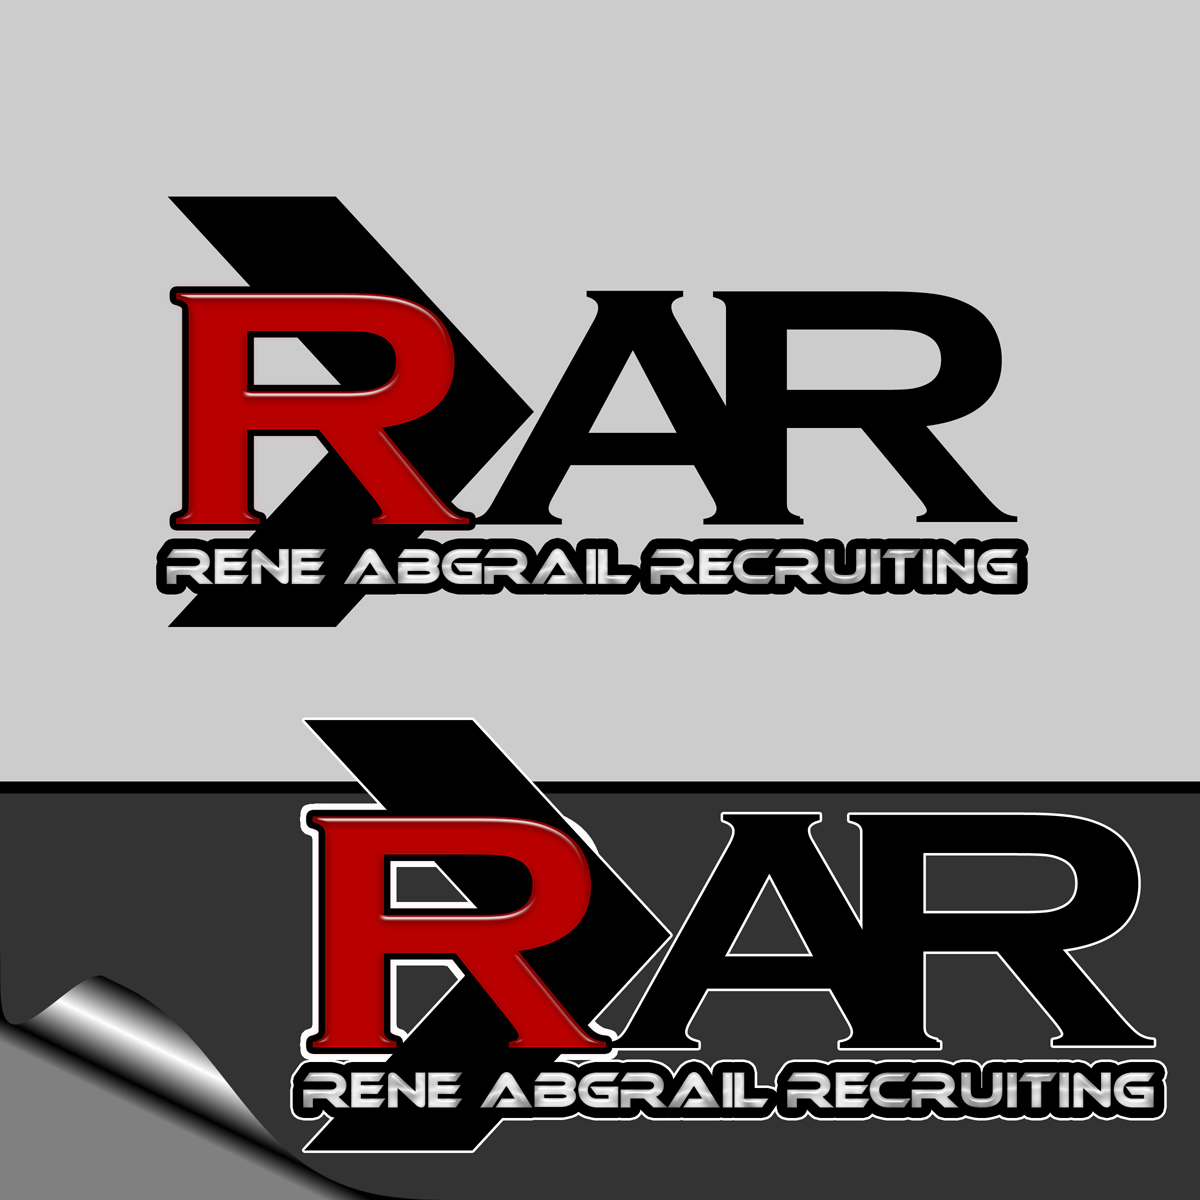 Logo Design by MITUCA ANDREI - Entry No. 6 in the Logo Design Contest Artistic Logo Design for René Abgrall Recruiting.